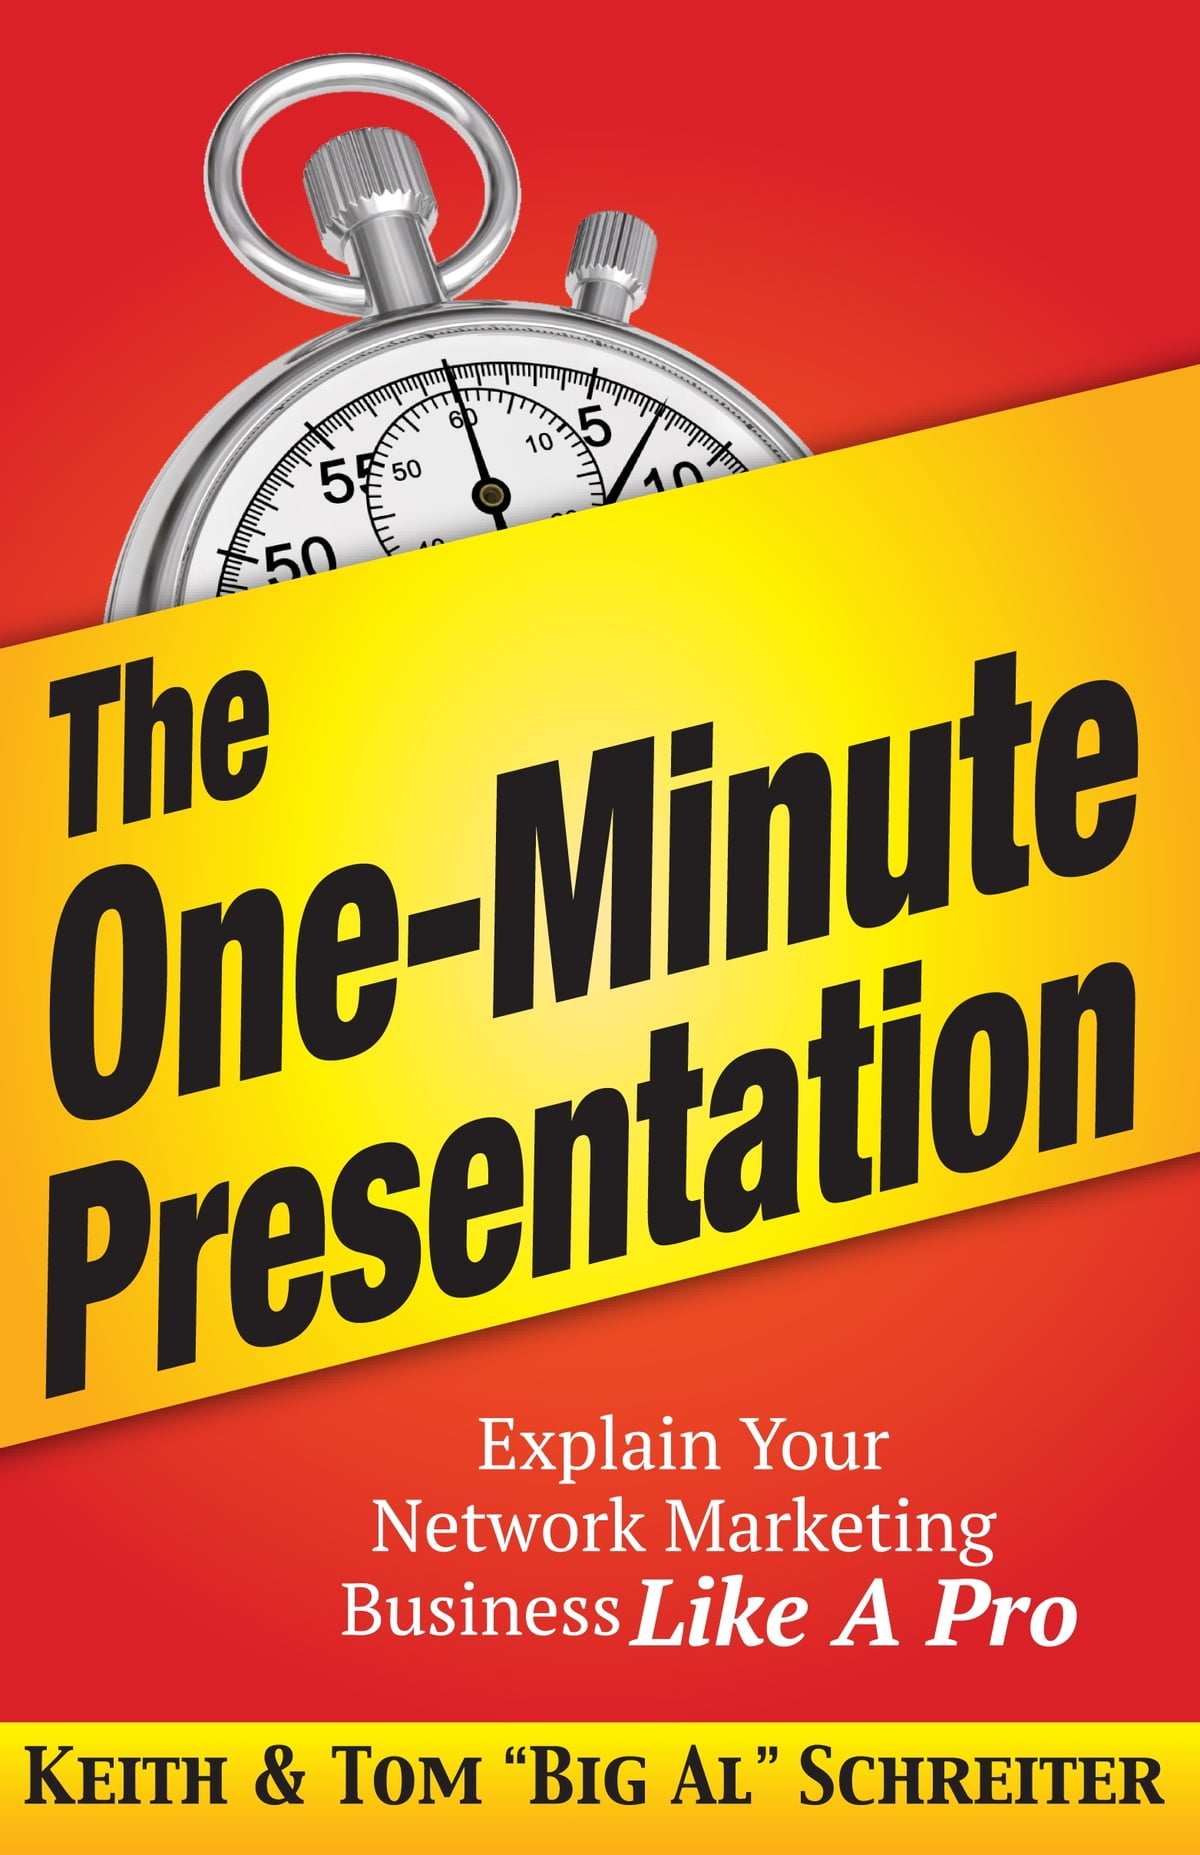 The one-minute presentation by keith schreiter on apple books.